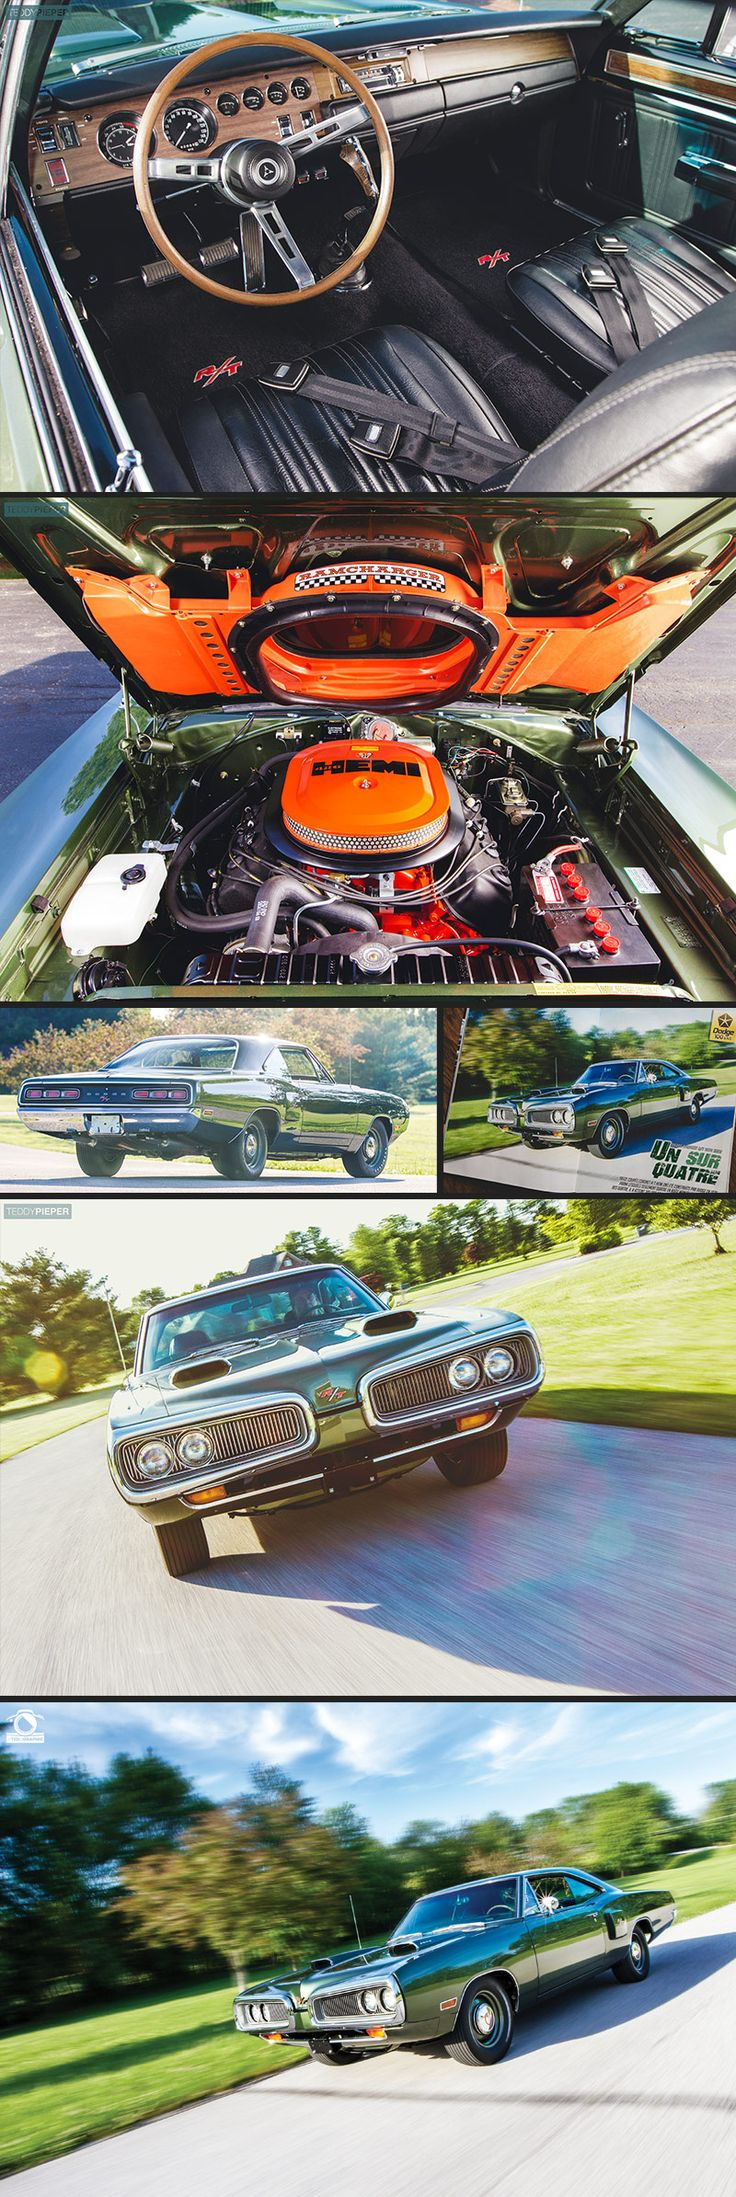 """was the first to officially be designated """"Hemi"""". The 426 Hemi was first produced for use in #NASCAR. After being banned. Chrysler introduced the """"Street"""" #Hemi in 1966 just to sell the required number of Hemi engines to the public to legally use it for the 1966 NASCAR season. This 1970 #Dodge Hemi #Coronet R/T pictured. is an example of one of the rarest Hemi 4-speed #Mopars ever built. Can you say #Rare? --- 2017 #Calendars are on Sale Now!  --- www.tedisgraphic.com/shop"""